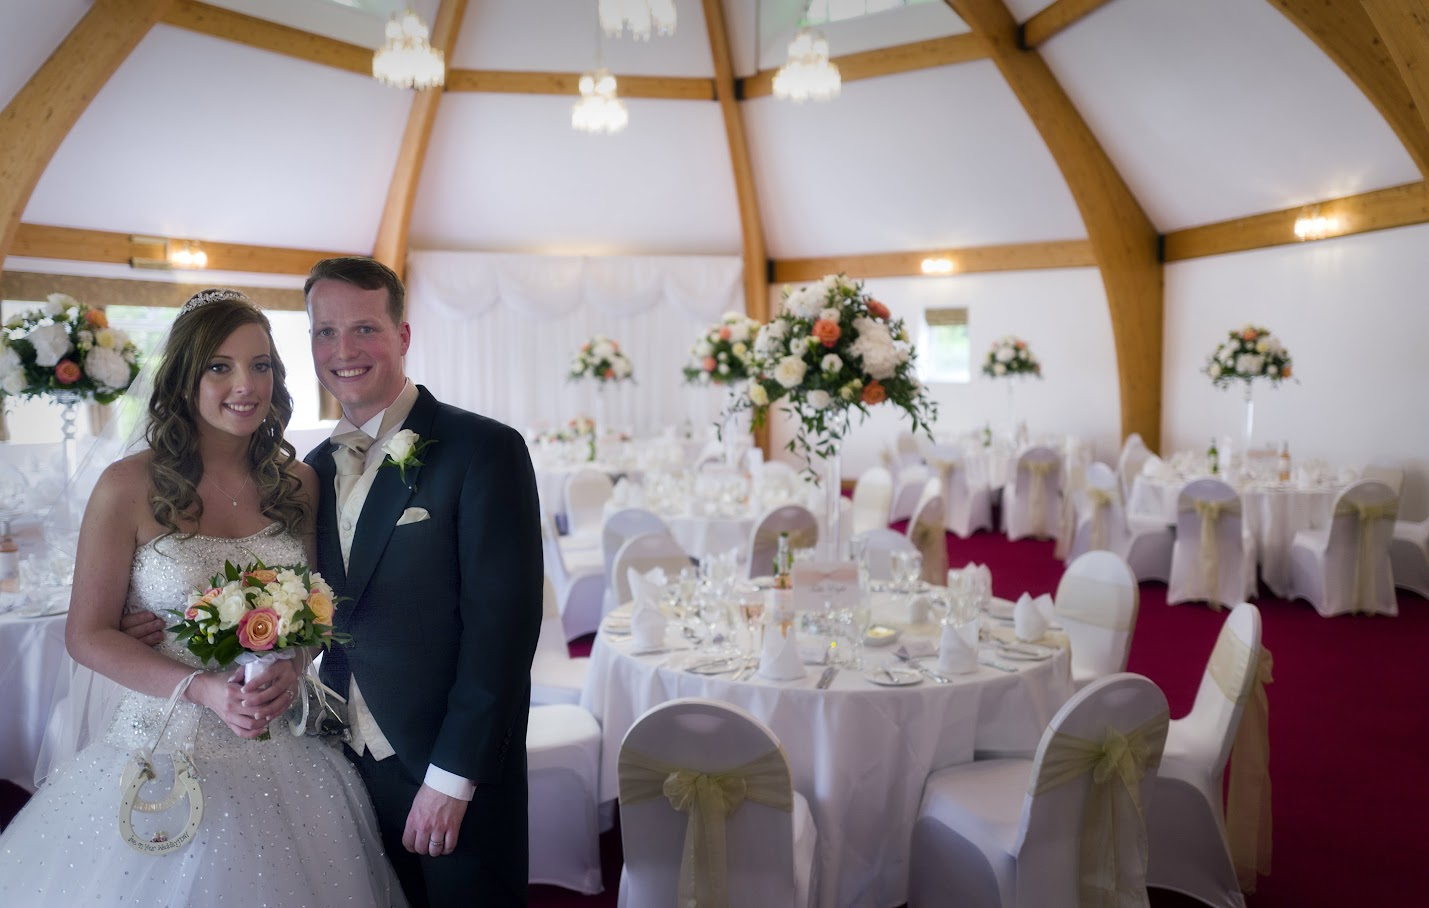 Little Silver Country Hotel,Tenterden - hotel, weddings, restaurant